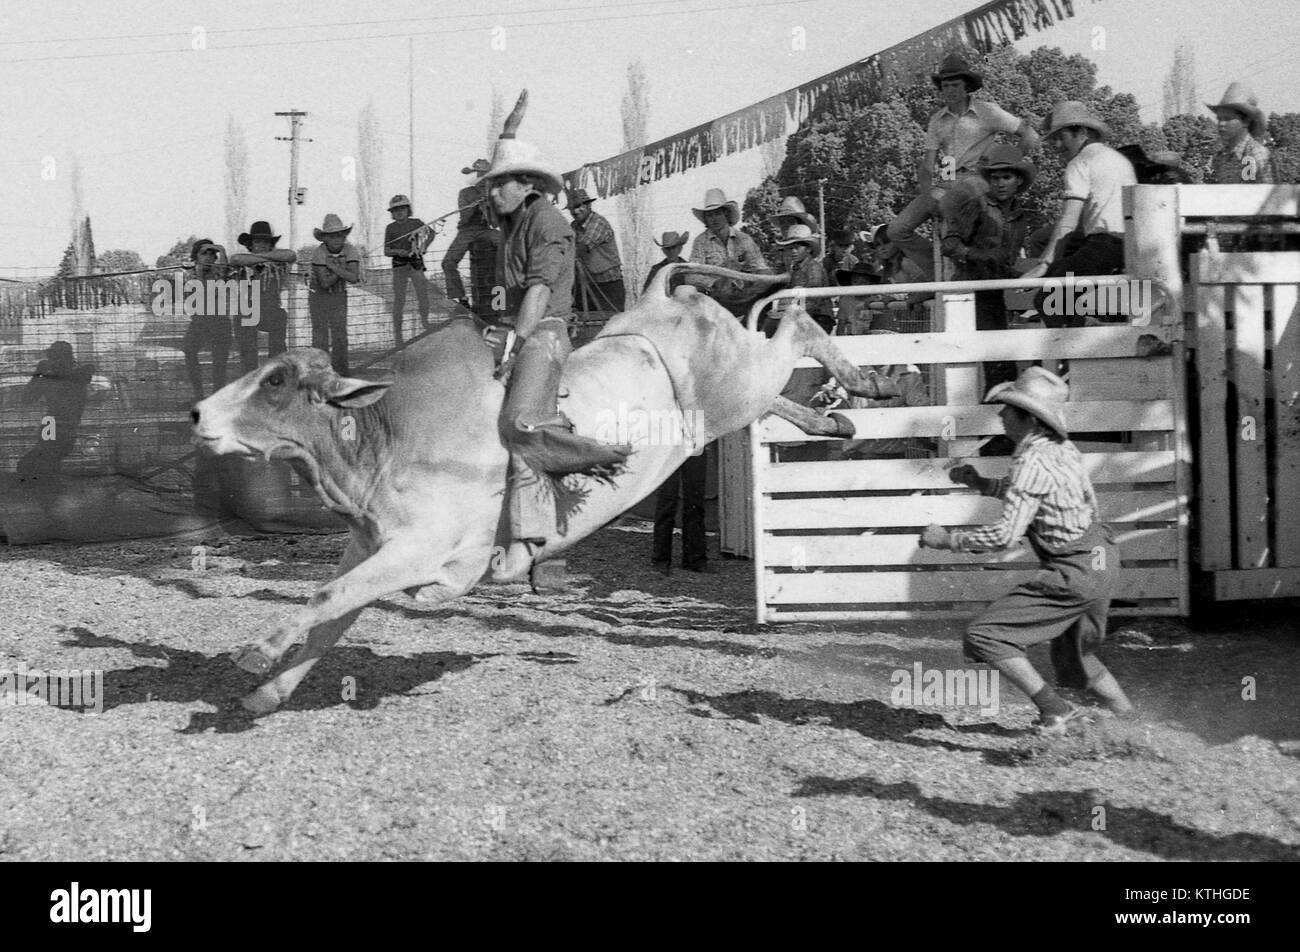 f7f26c64a Bull Bull Riding Black and White Stock Photos & Images - Alamy